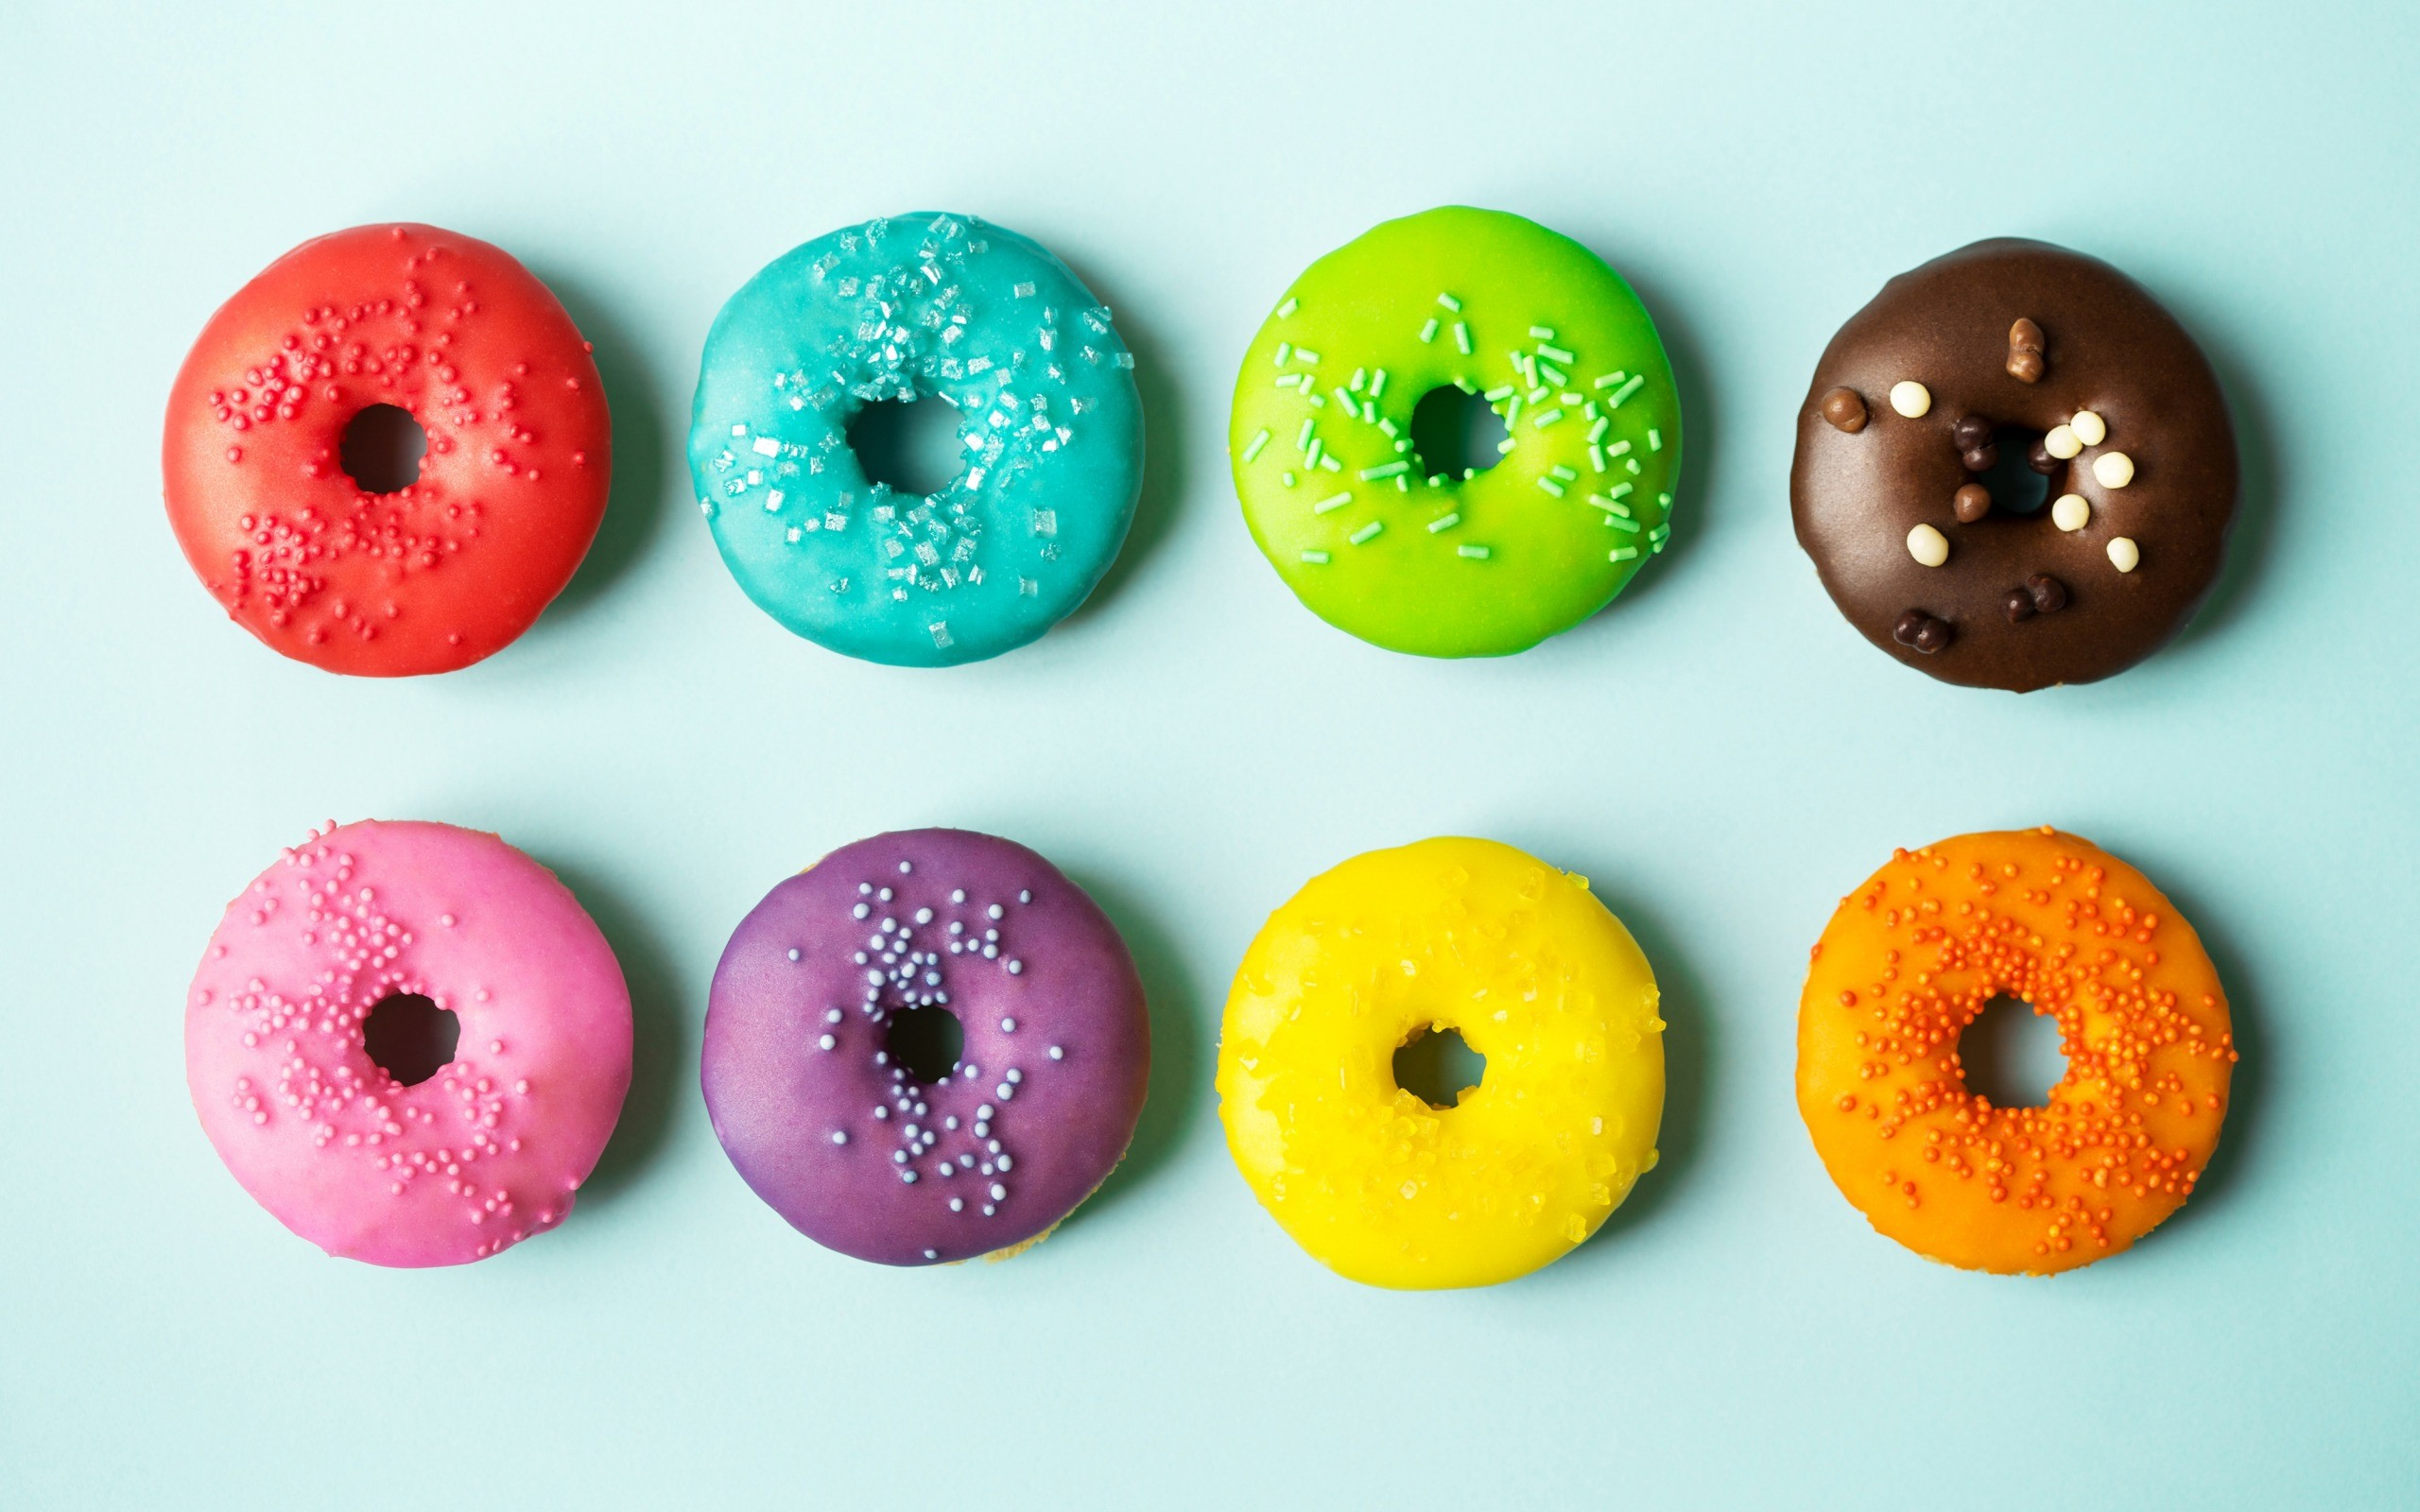 Res: 2560x1600, donuts, pastries, colorful cream, colored donuts, sweets